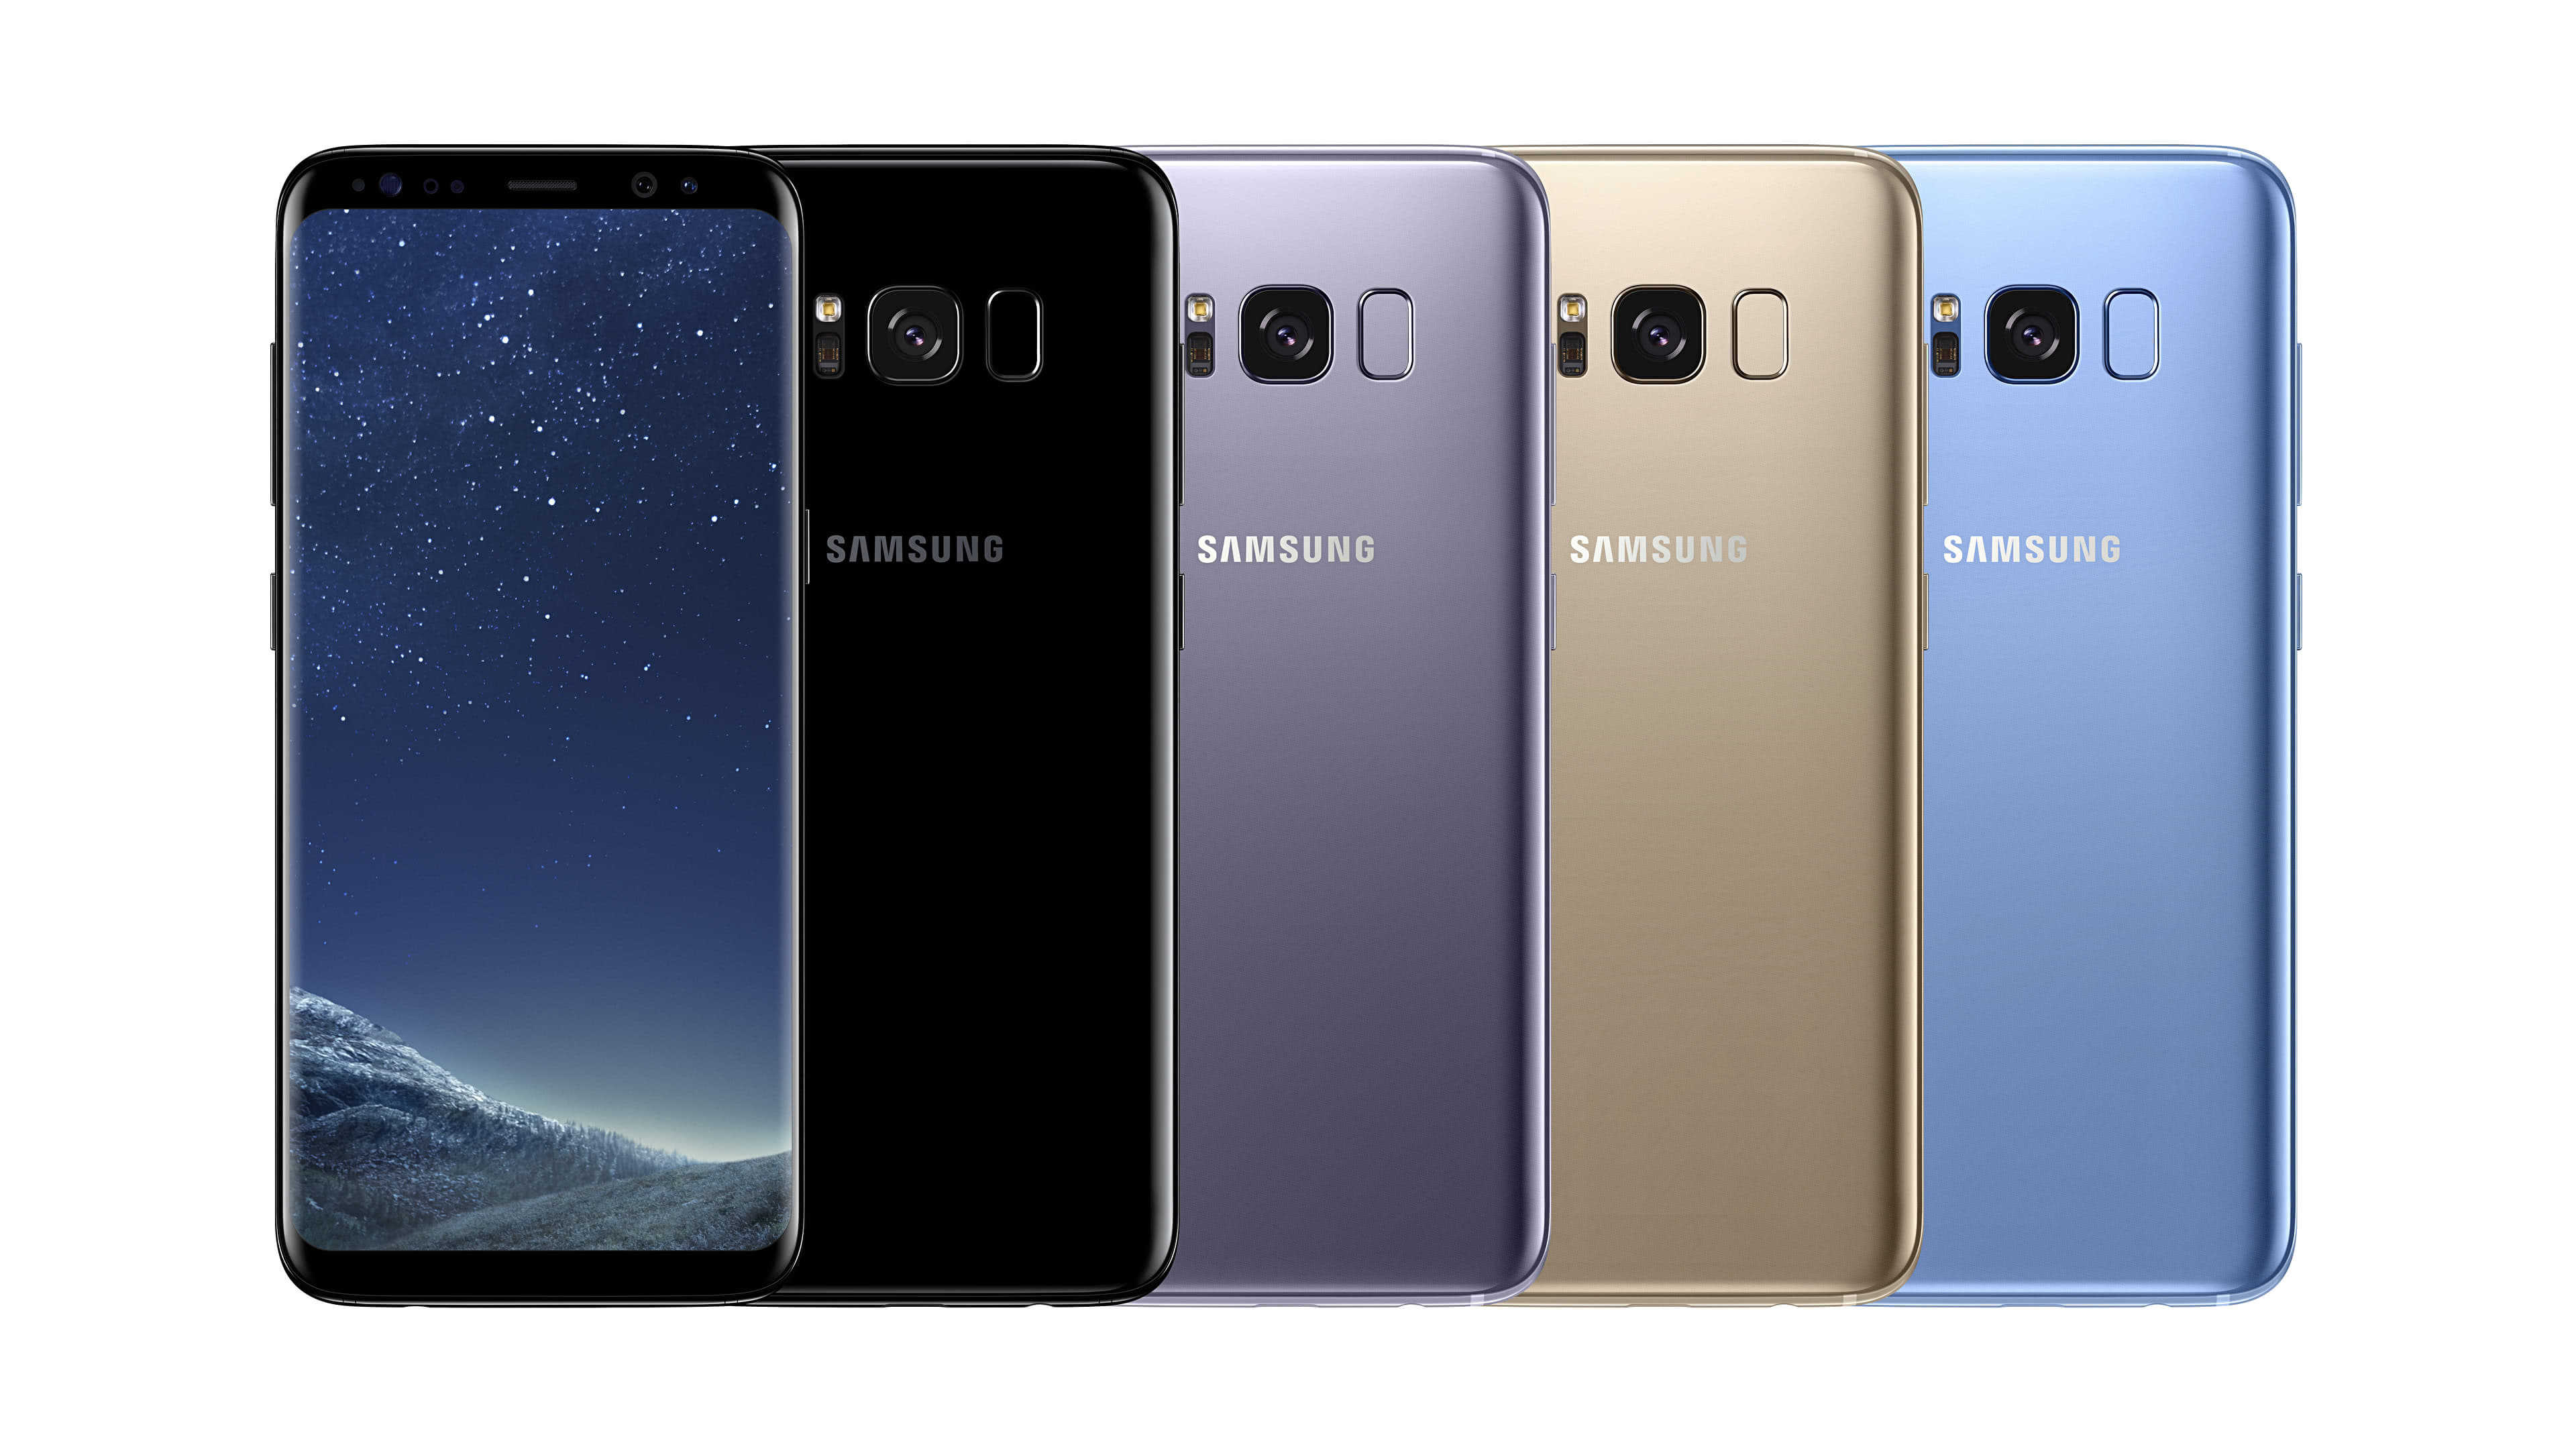 Samsung Galaxy S8 Colors Uhd 4k Wallpaper Pixelz